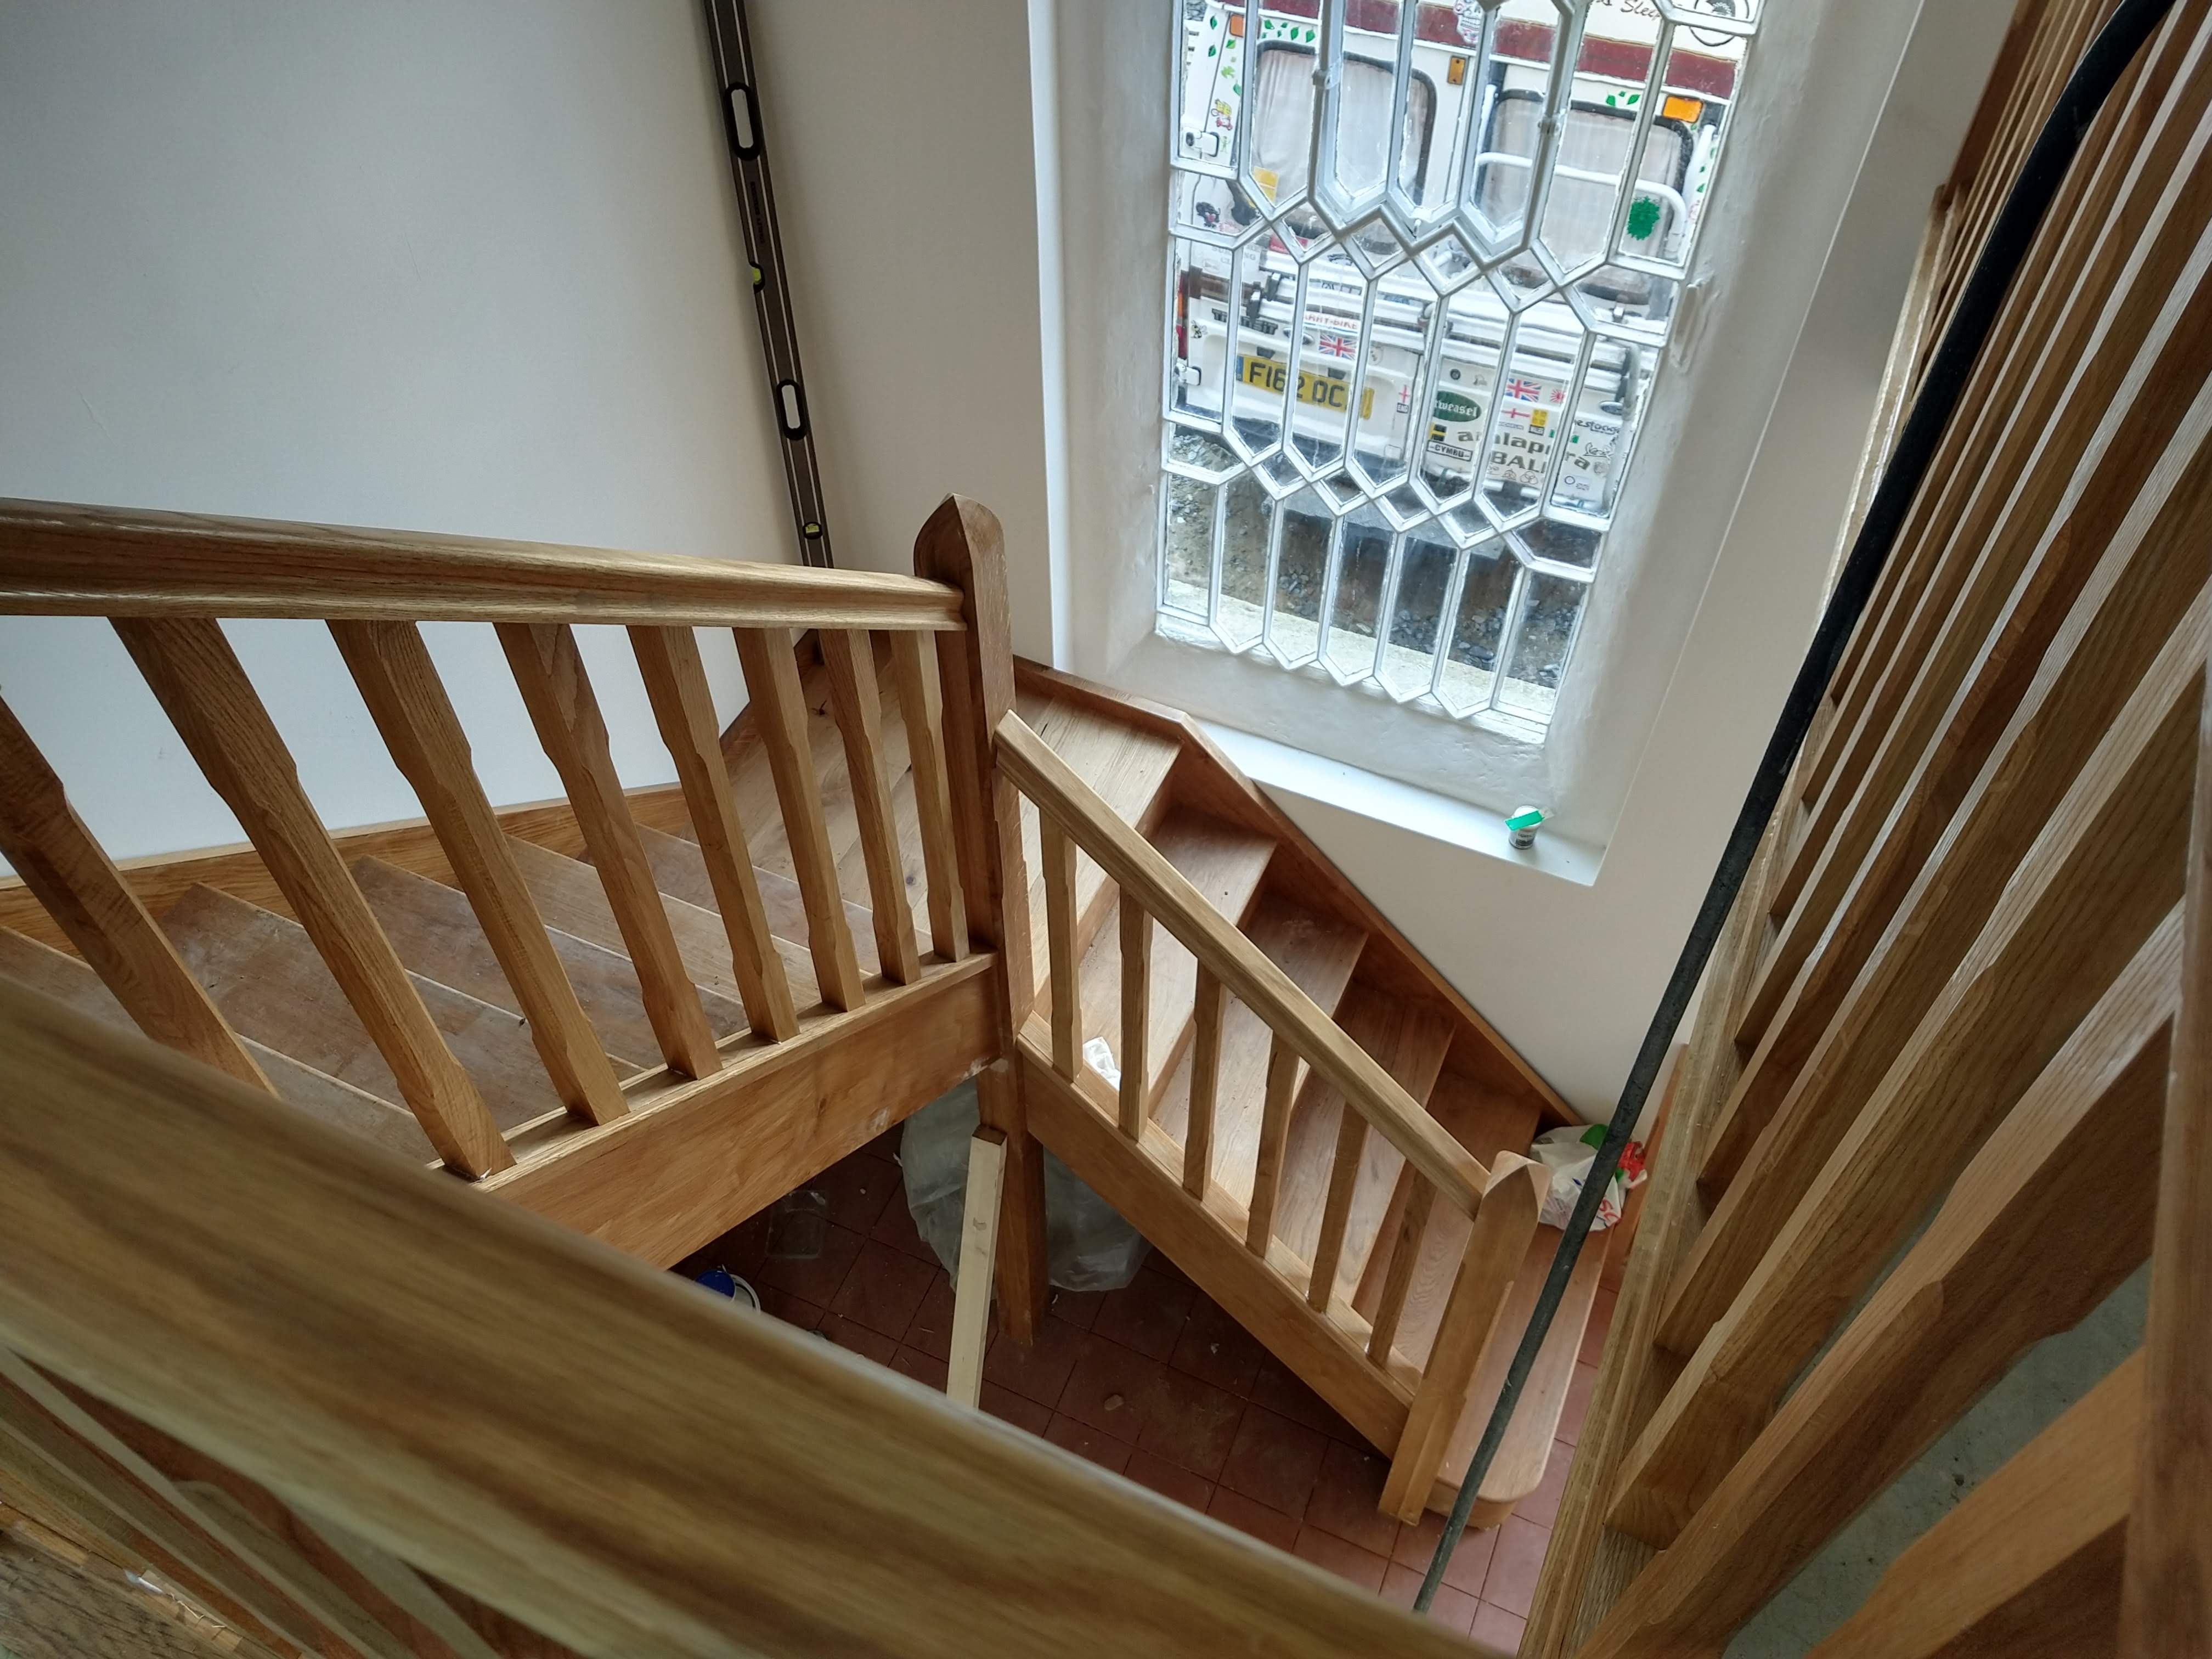 Bespoke staircase fitting